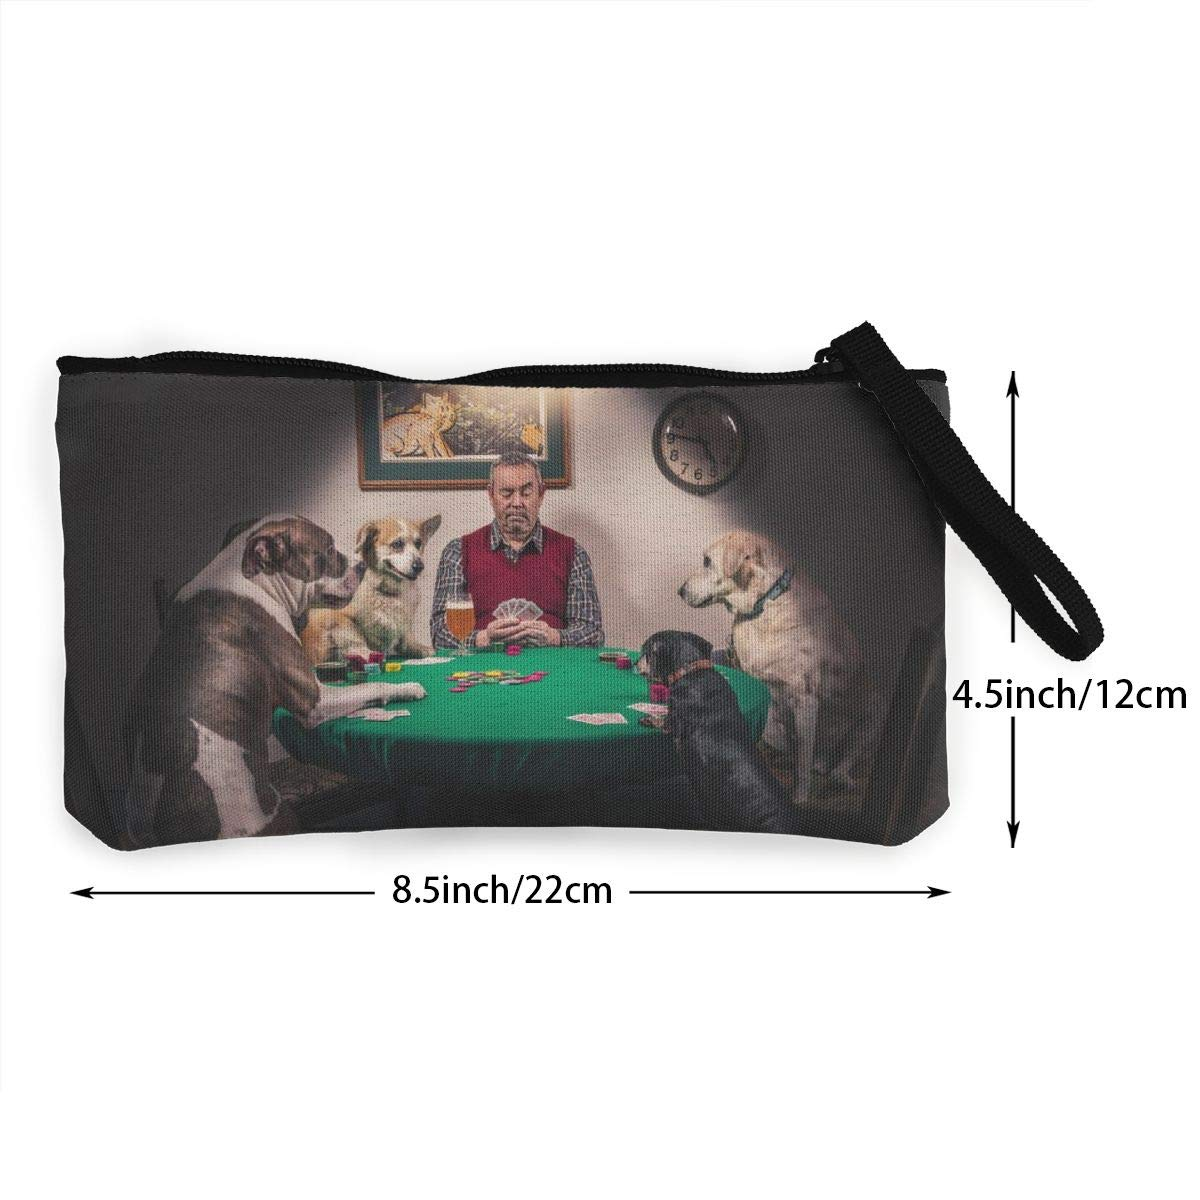 Man /& Dogs Playing Cards Zipper Canvas Coin Purse Wallet Make Up Bag,Cellphone Bag With Handle